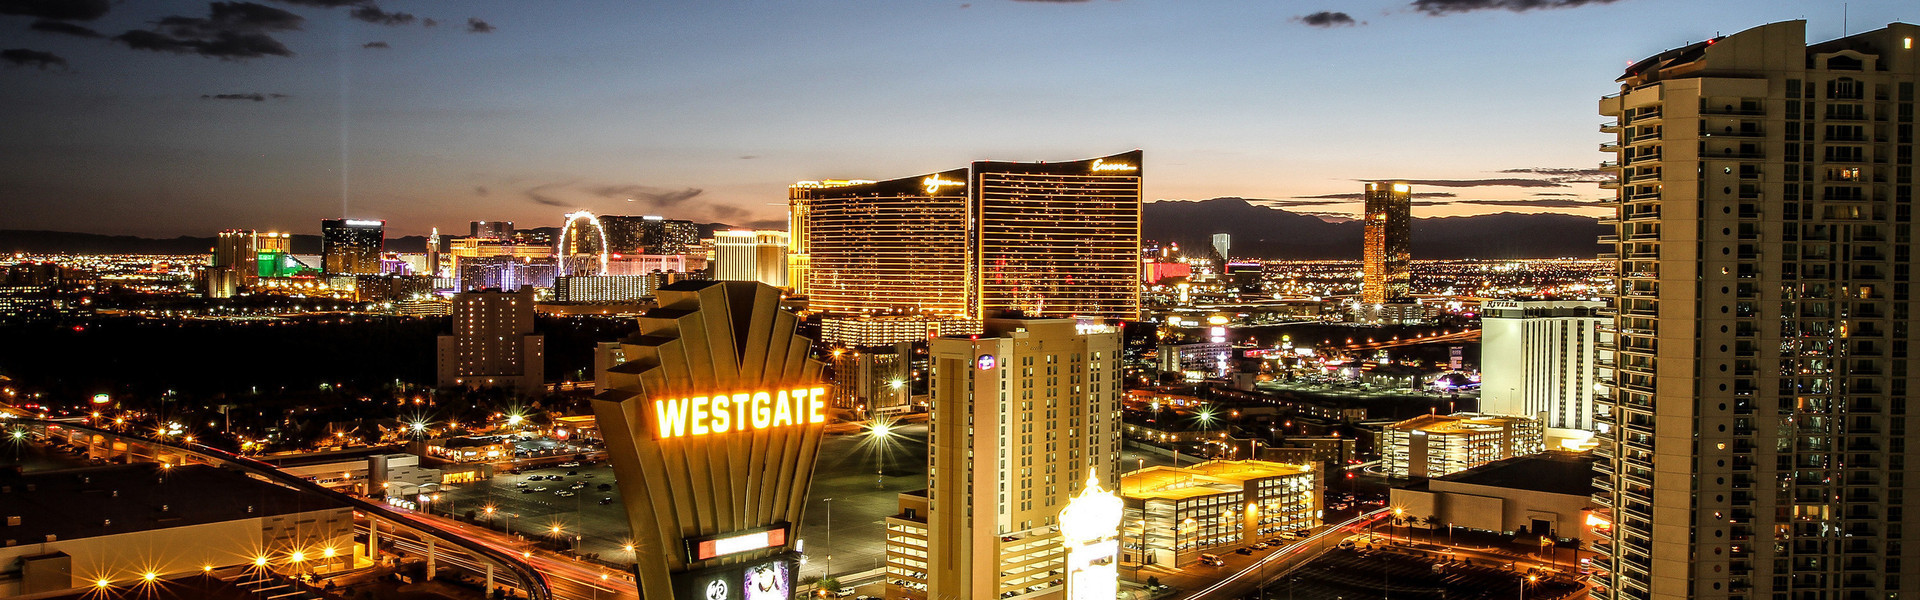 Win Loss Statement Request | Westgate Las Vegas Resort & Casino